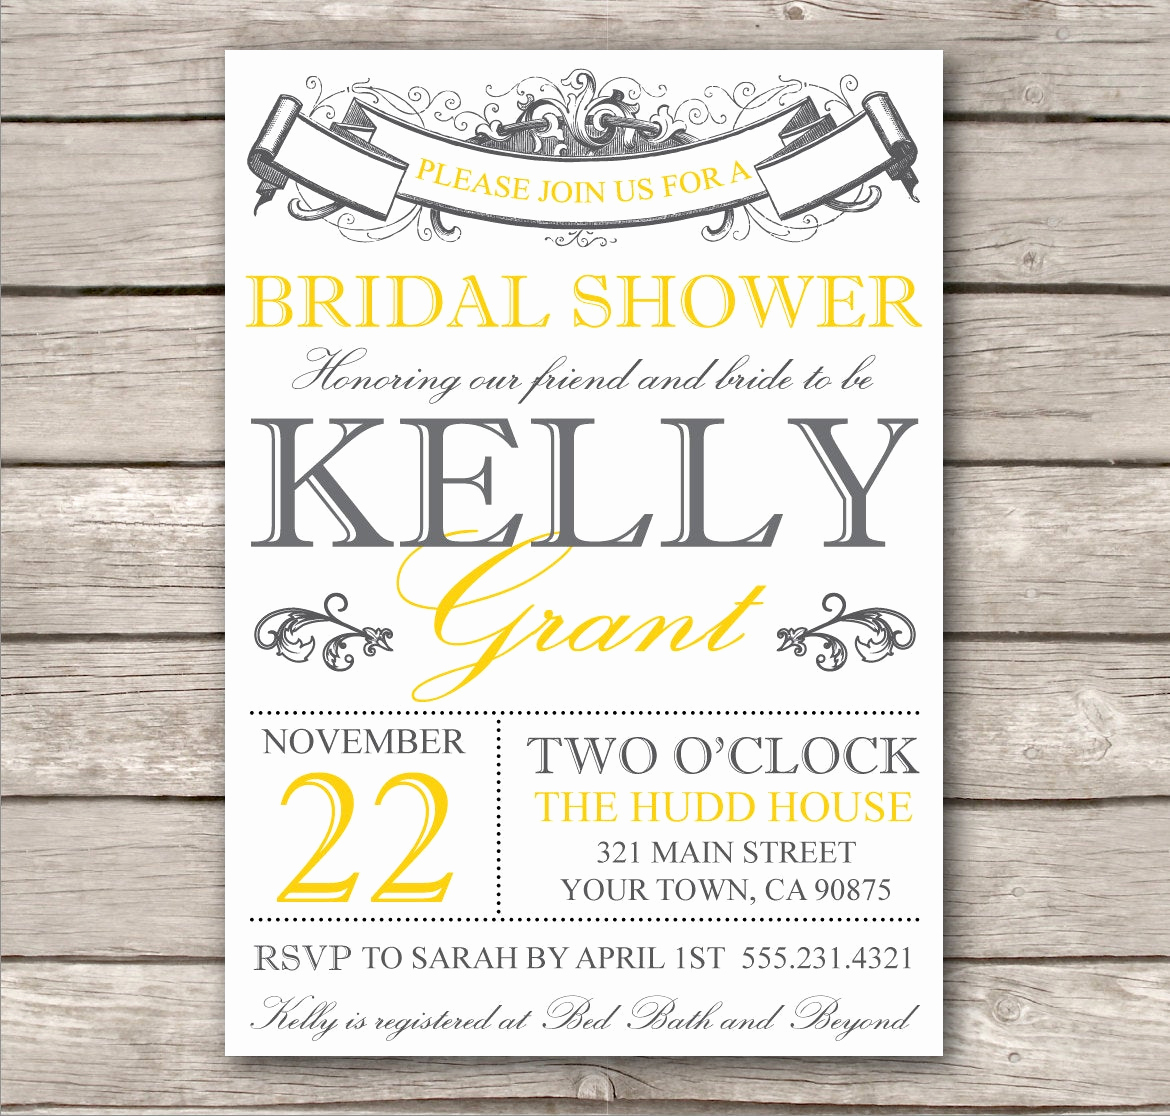 Free Bridal Shower Invitation Templates Awesome Chandeliers & Pendant Lights